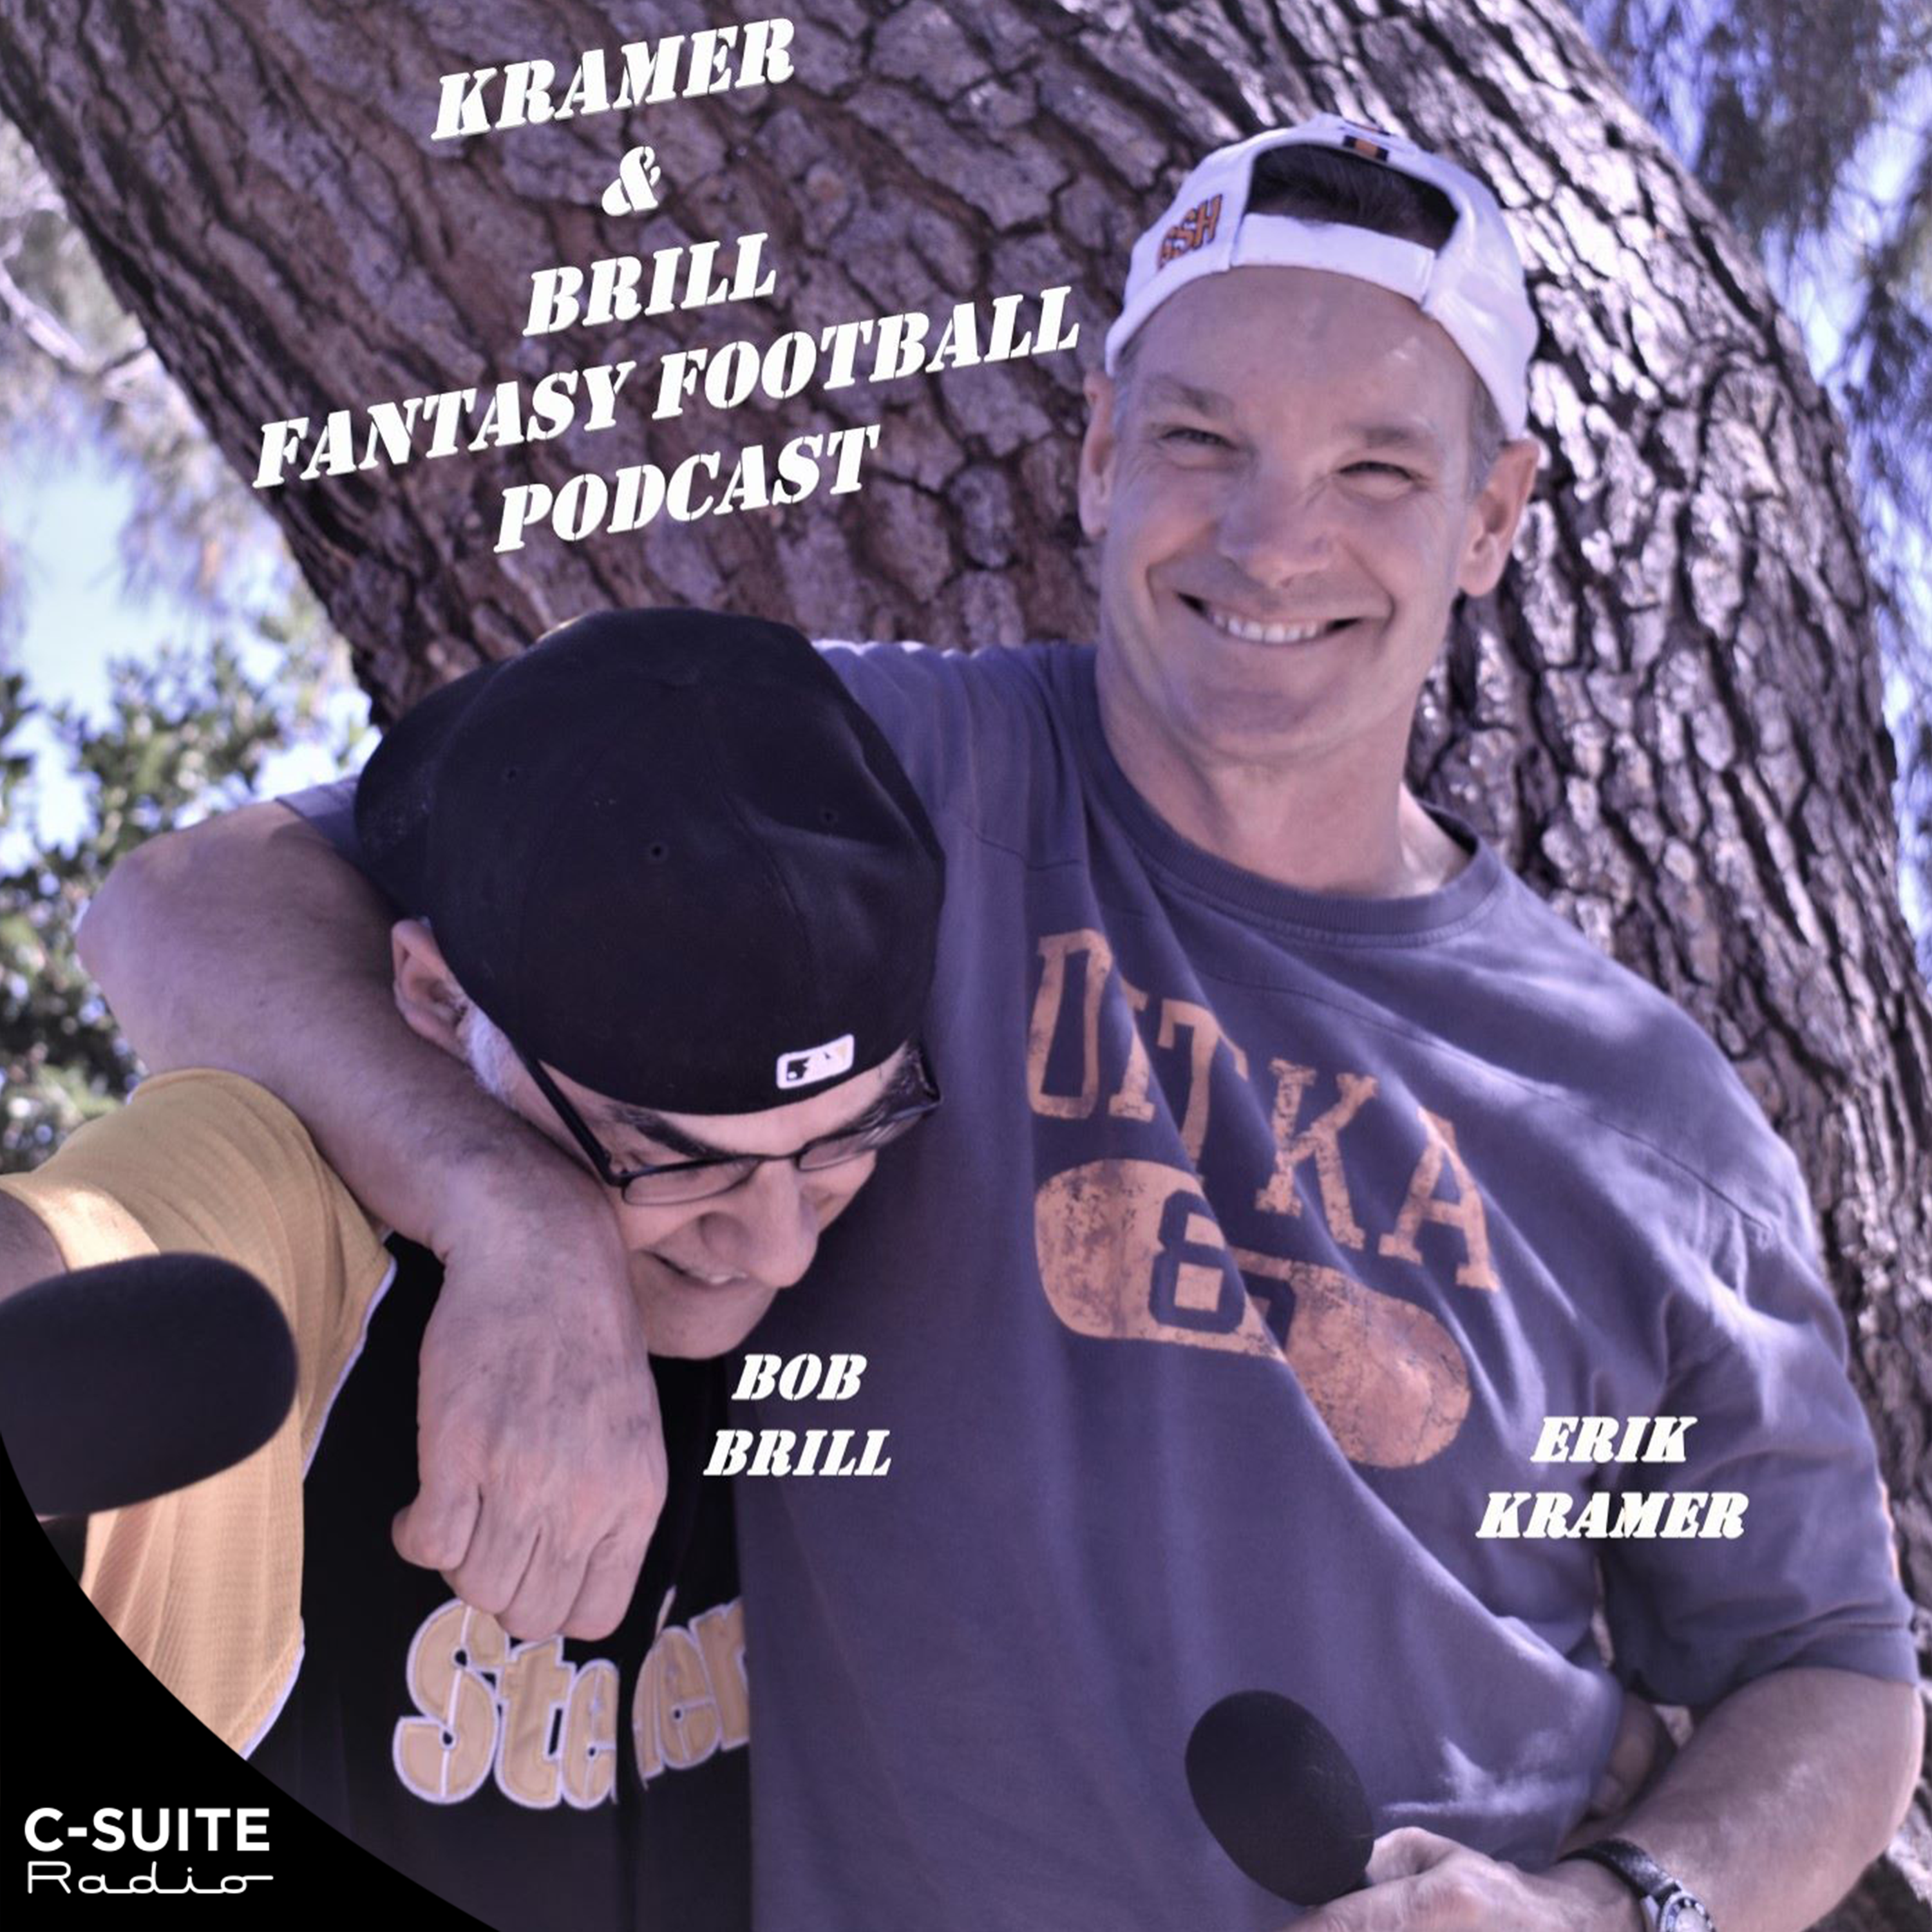 Kramer and Brill Fantasy Football Podcast